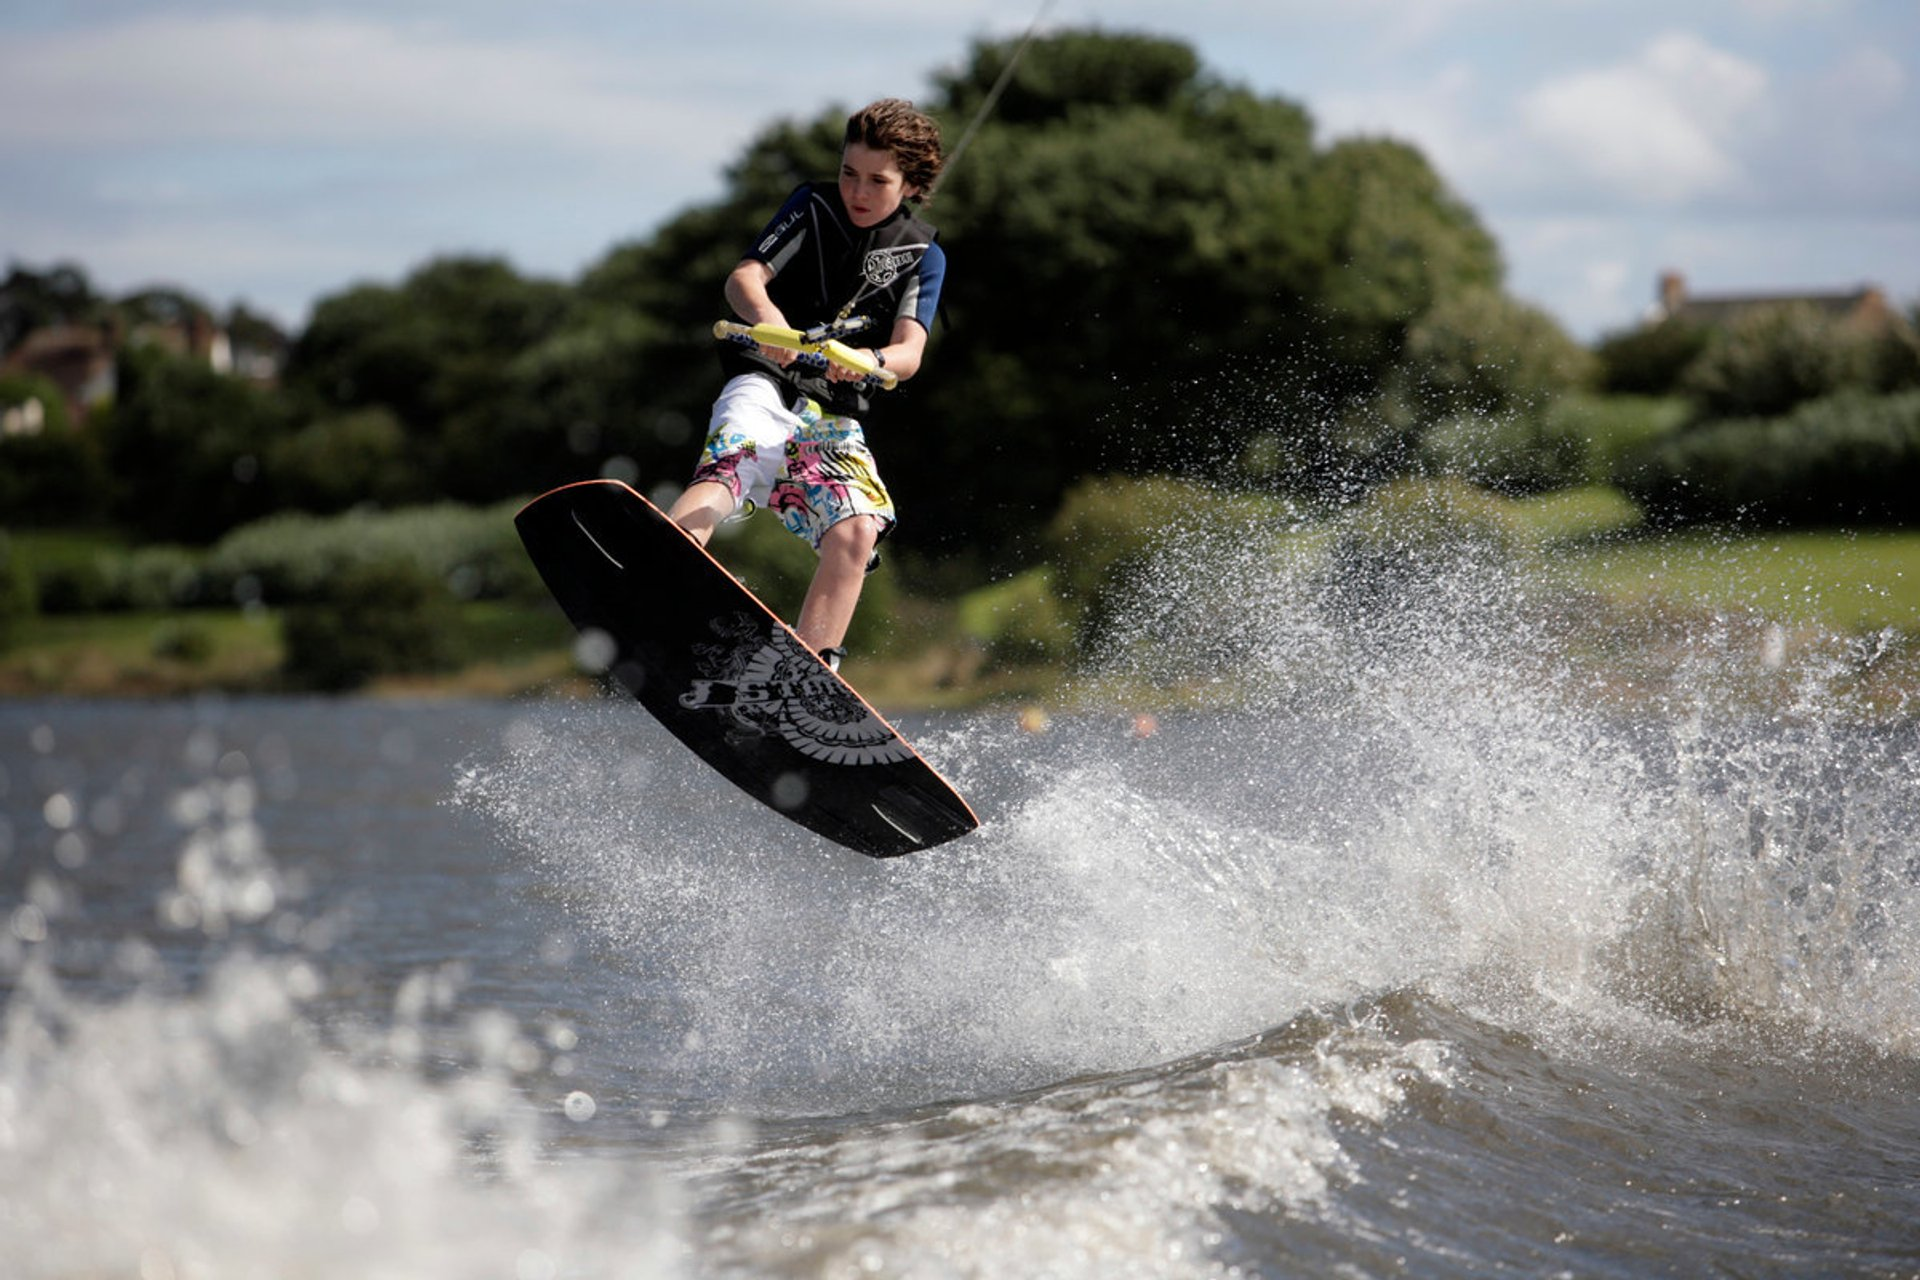 Water Skiing and Wakeboarding in Scotland 2020 - Best Time